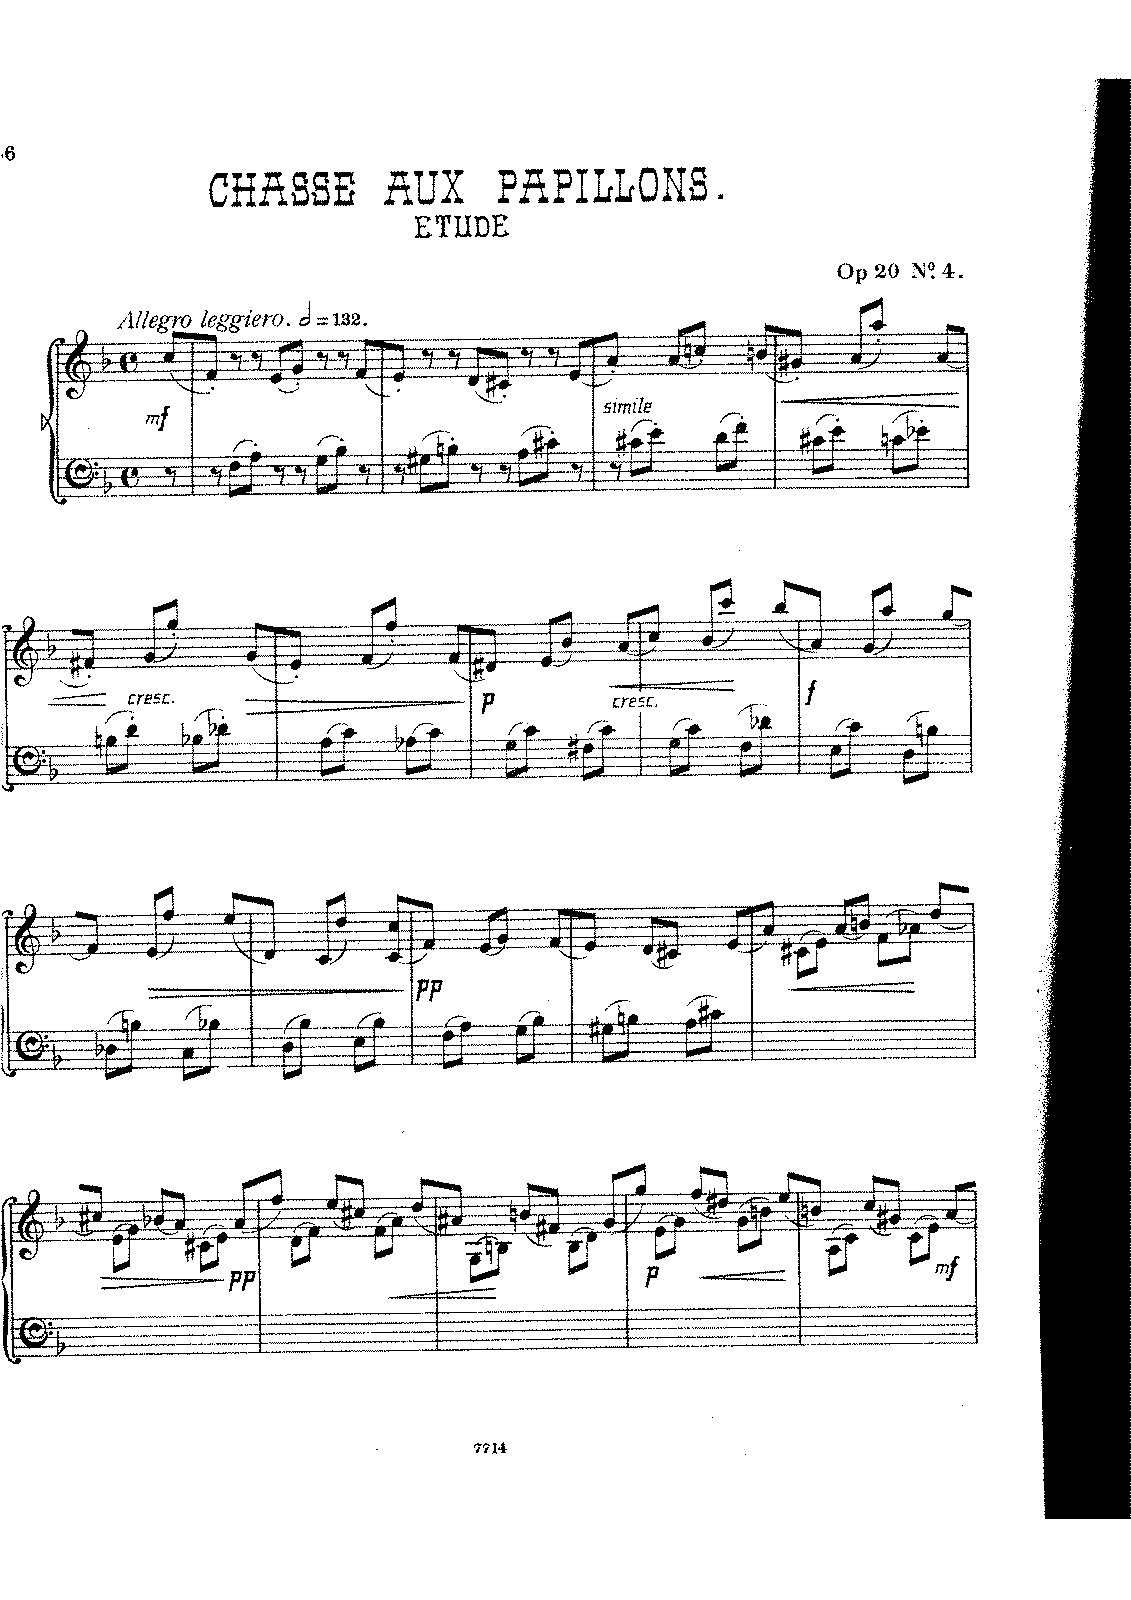 Mackenzie - Op.20 No.4 - Chasse aux Papillons.pdf